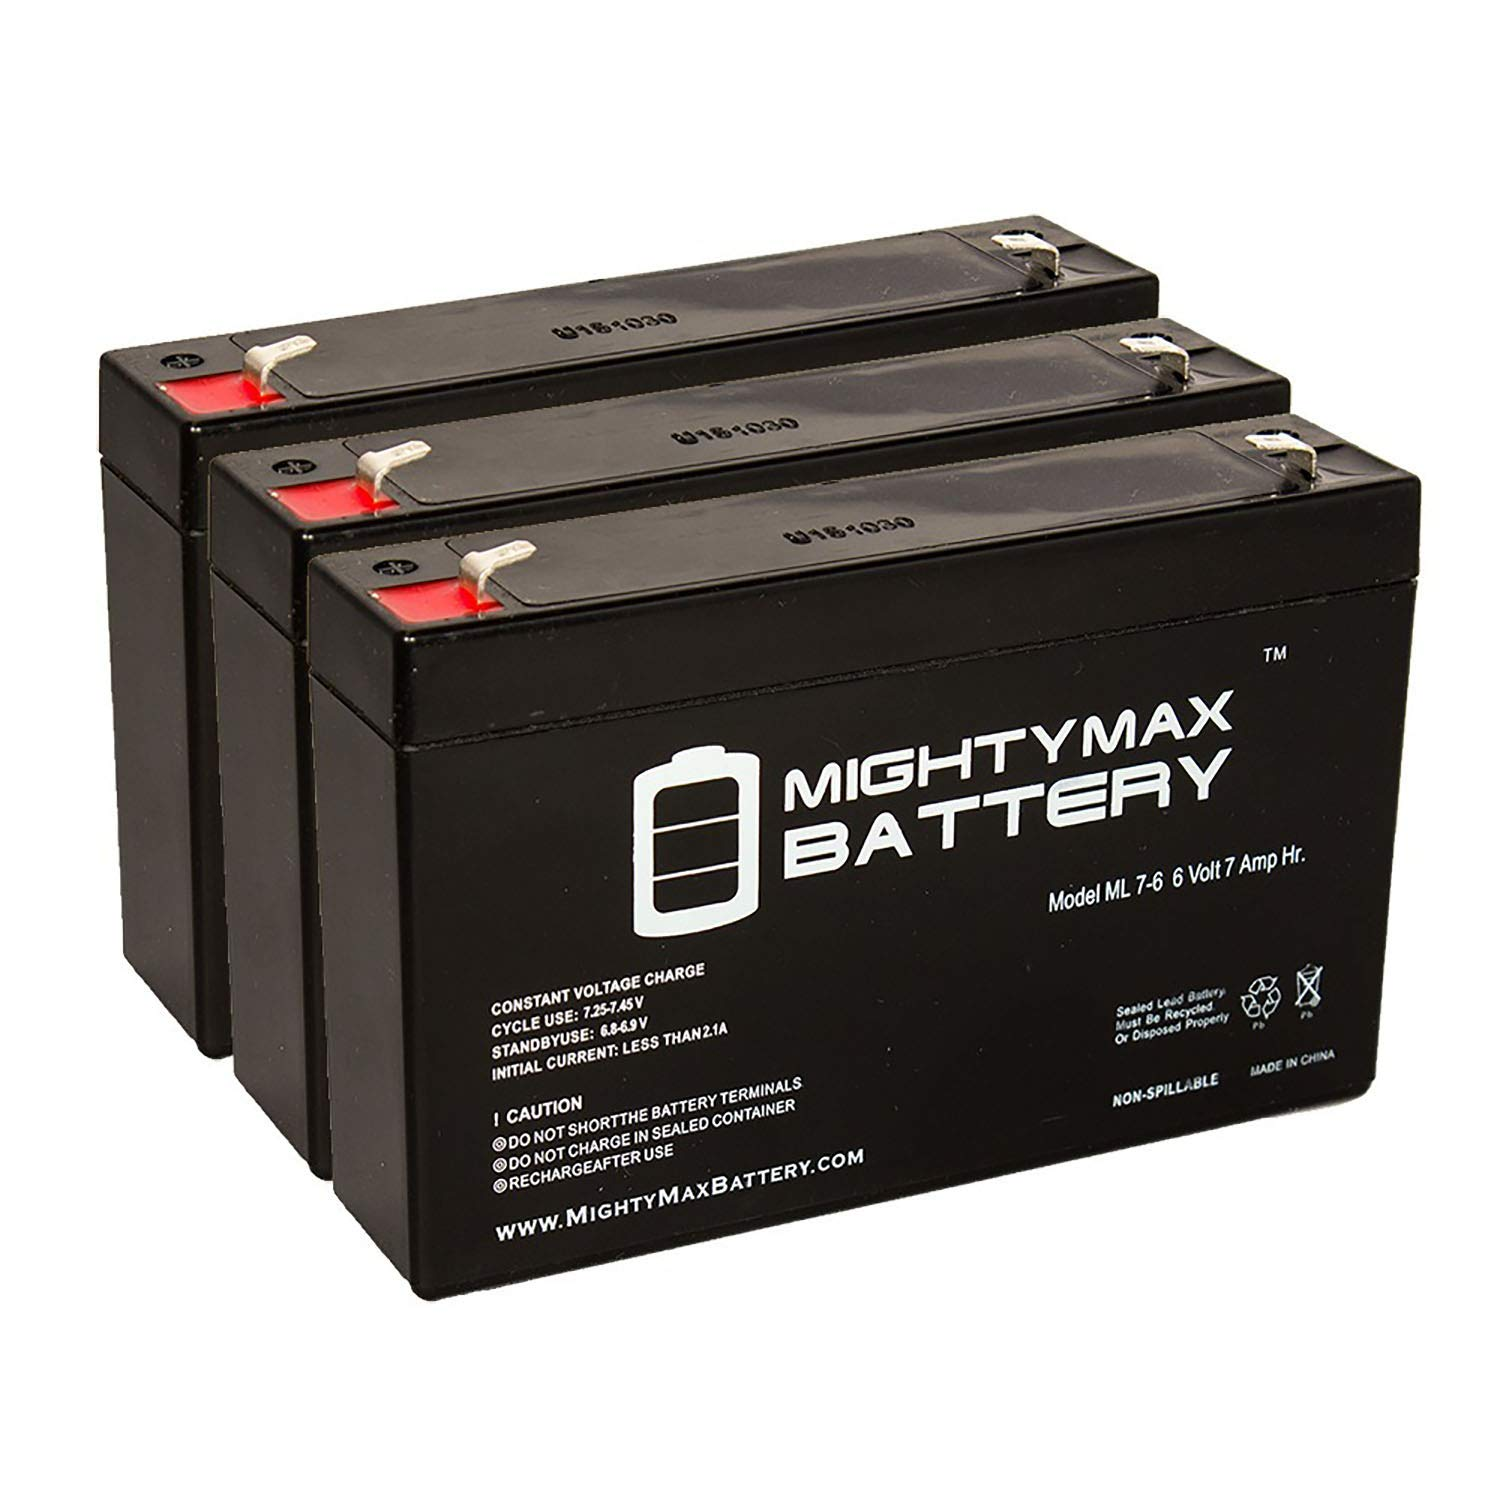 Mighty Max Battery 6V 7Ah SLA Replacement Battery for PE6V6.5,NP6-6,RT670,UB670-3 Pack Brand Product